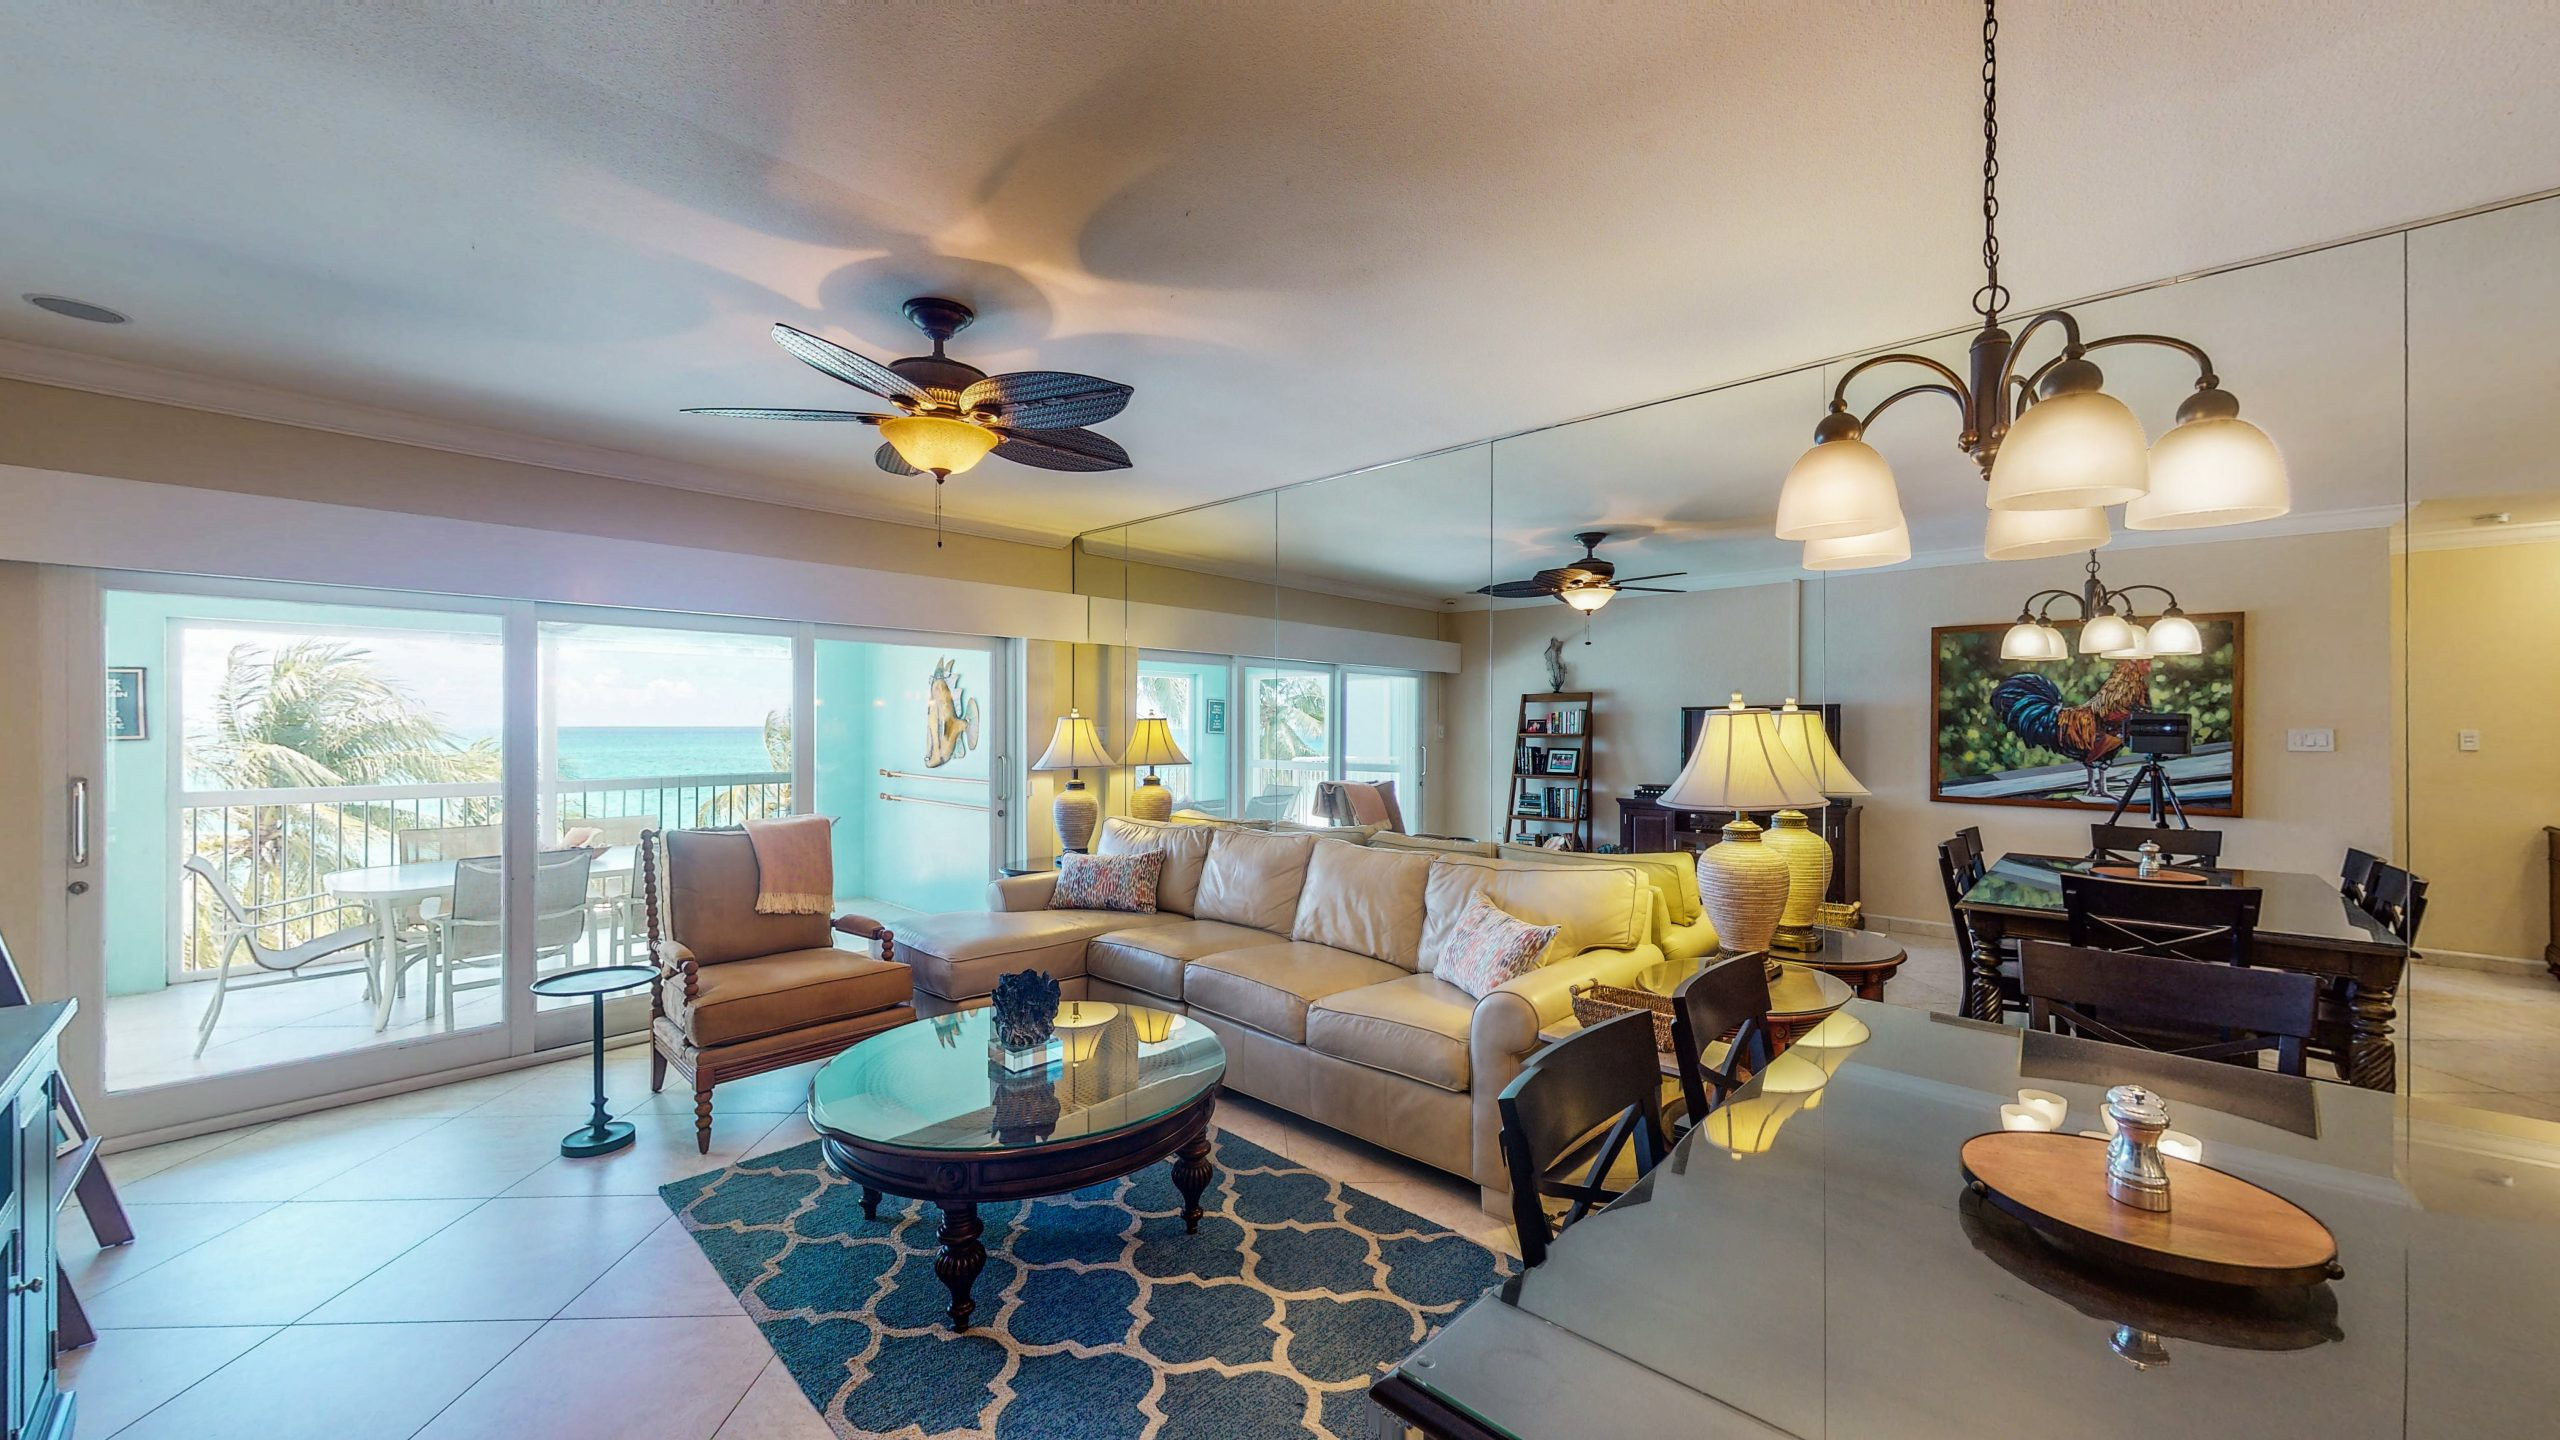 Living Room - Kitchen - Coral Stone Club, Cayman